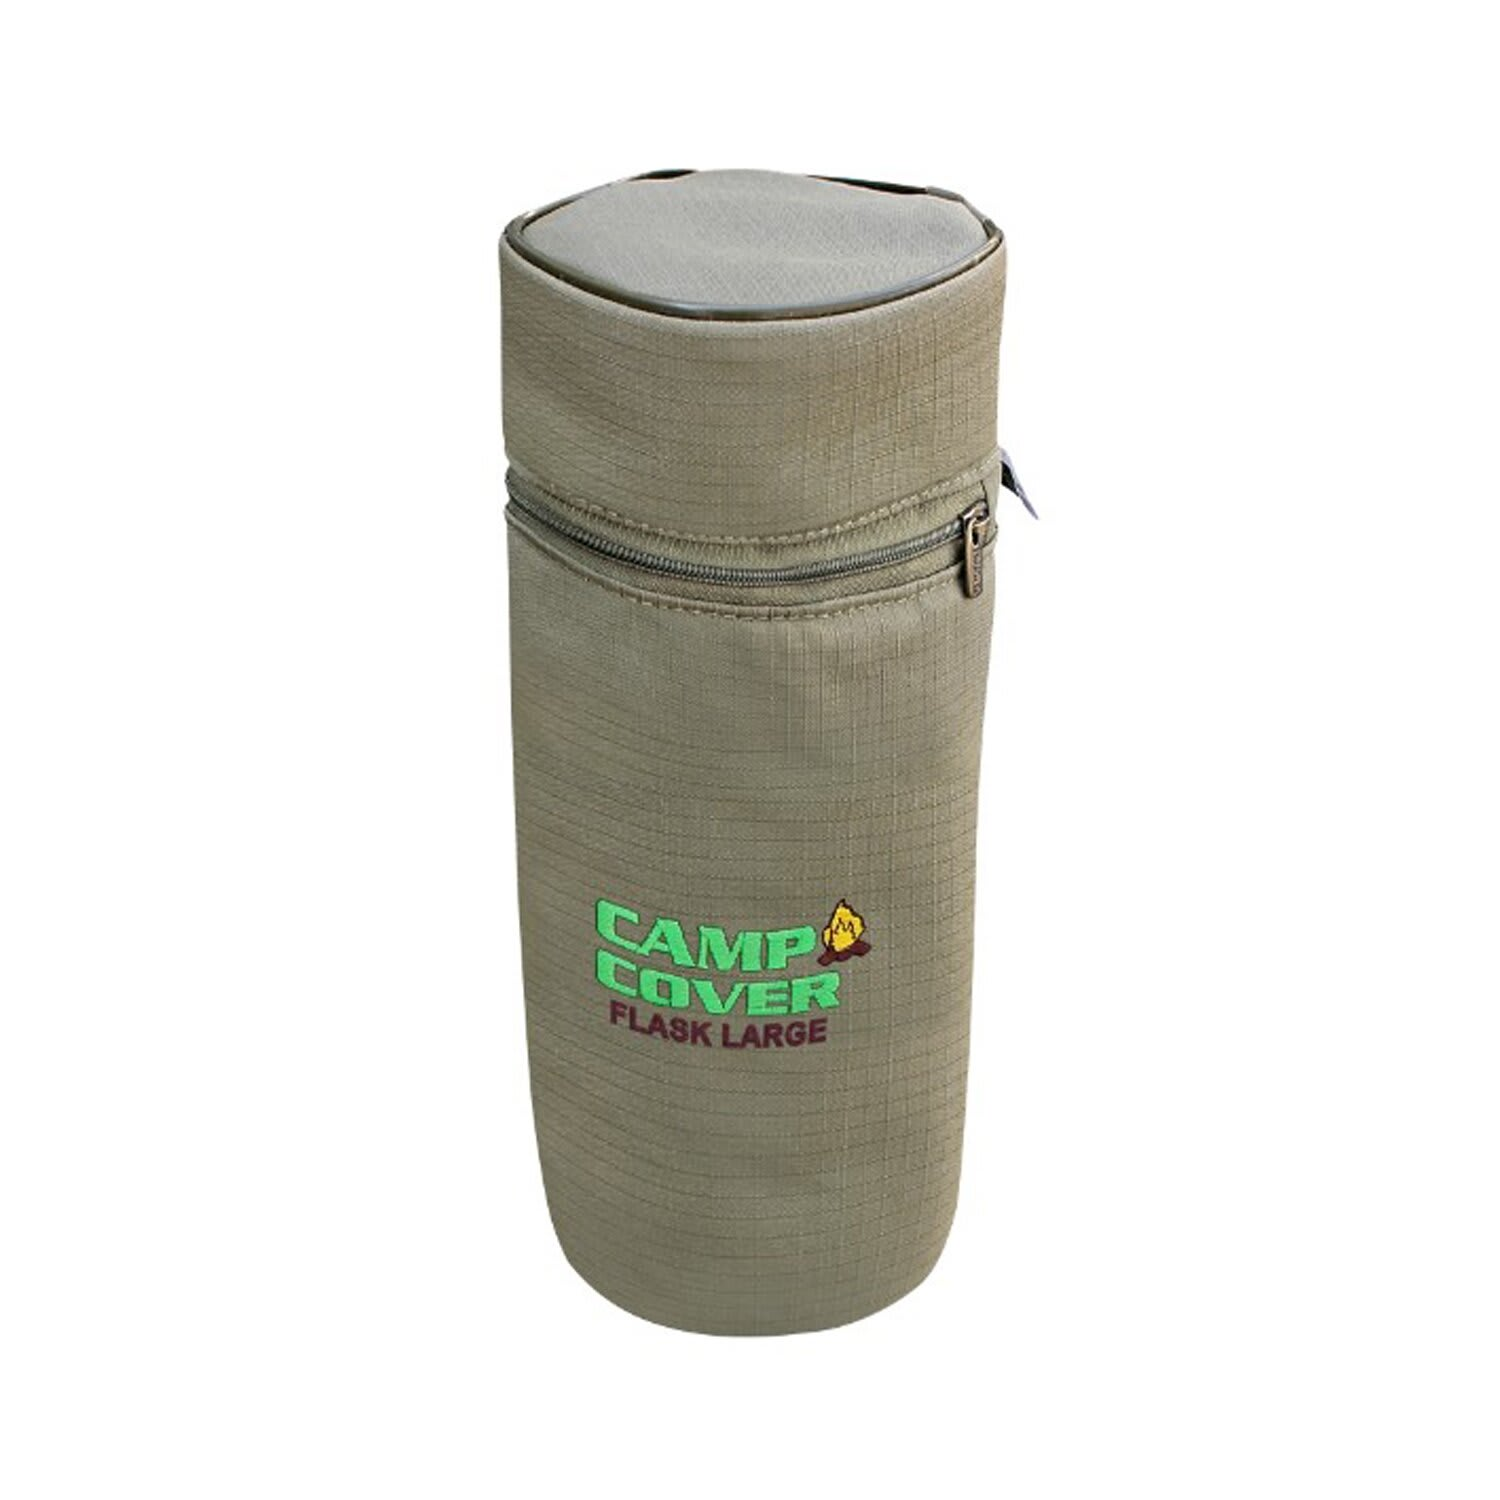 Camp Cover Large Universal Flask Cover